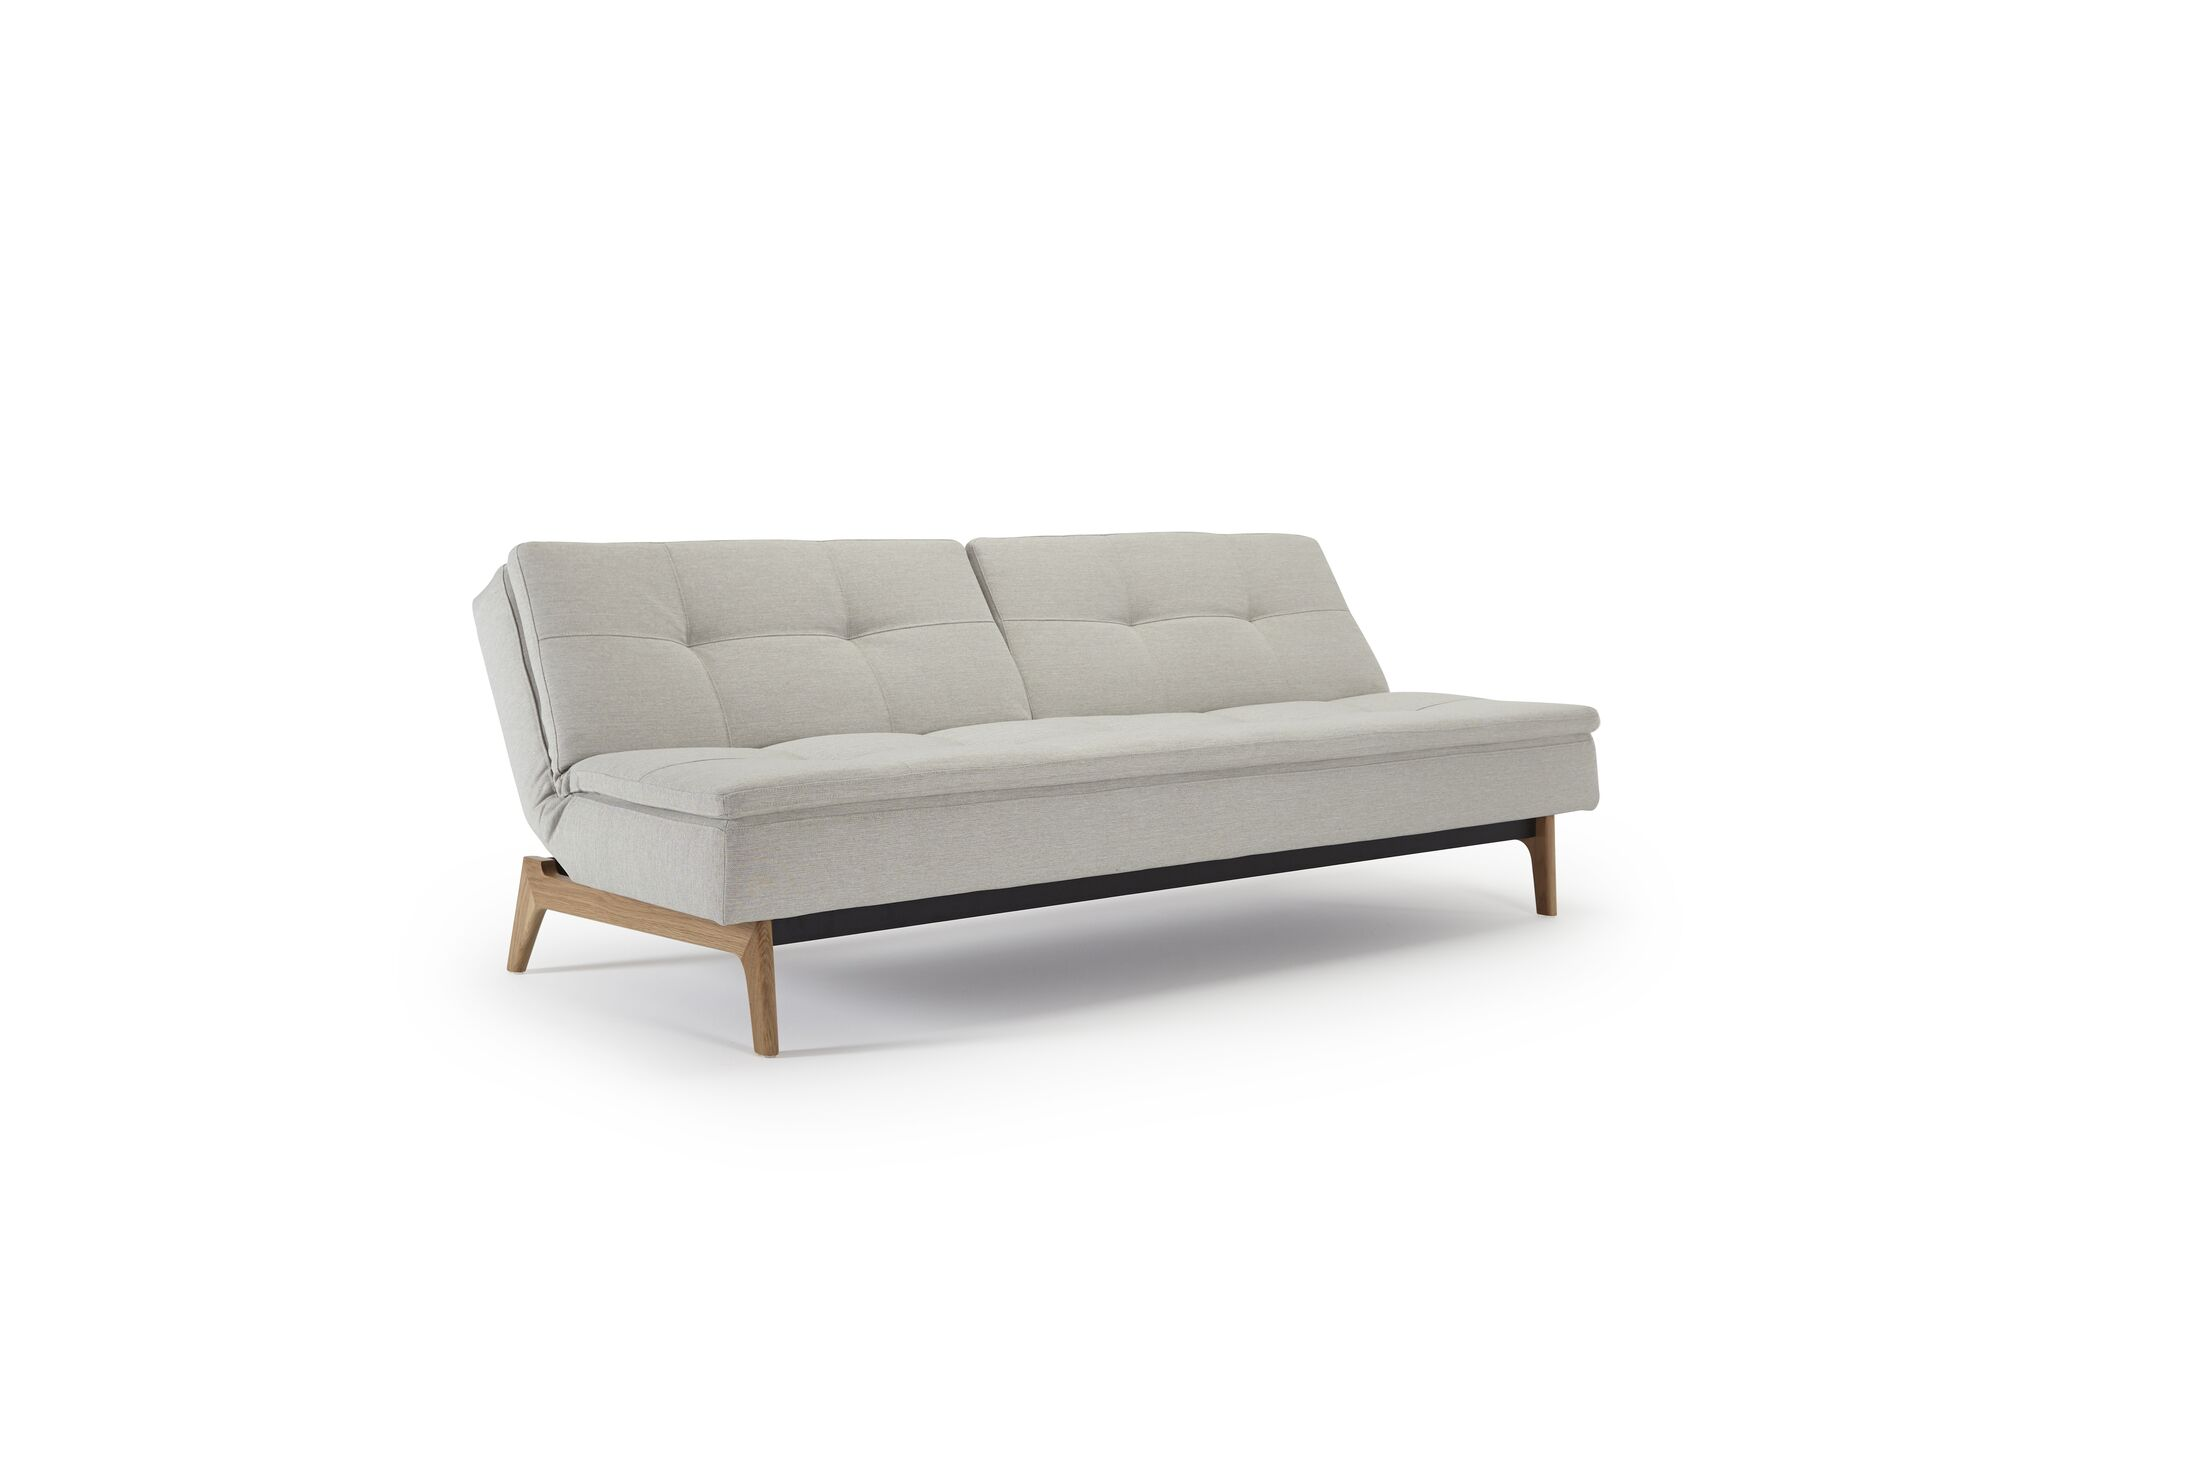 Dublexo Frej Sleeper Sofa